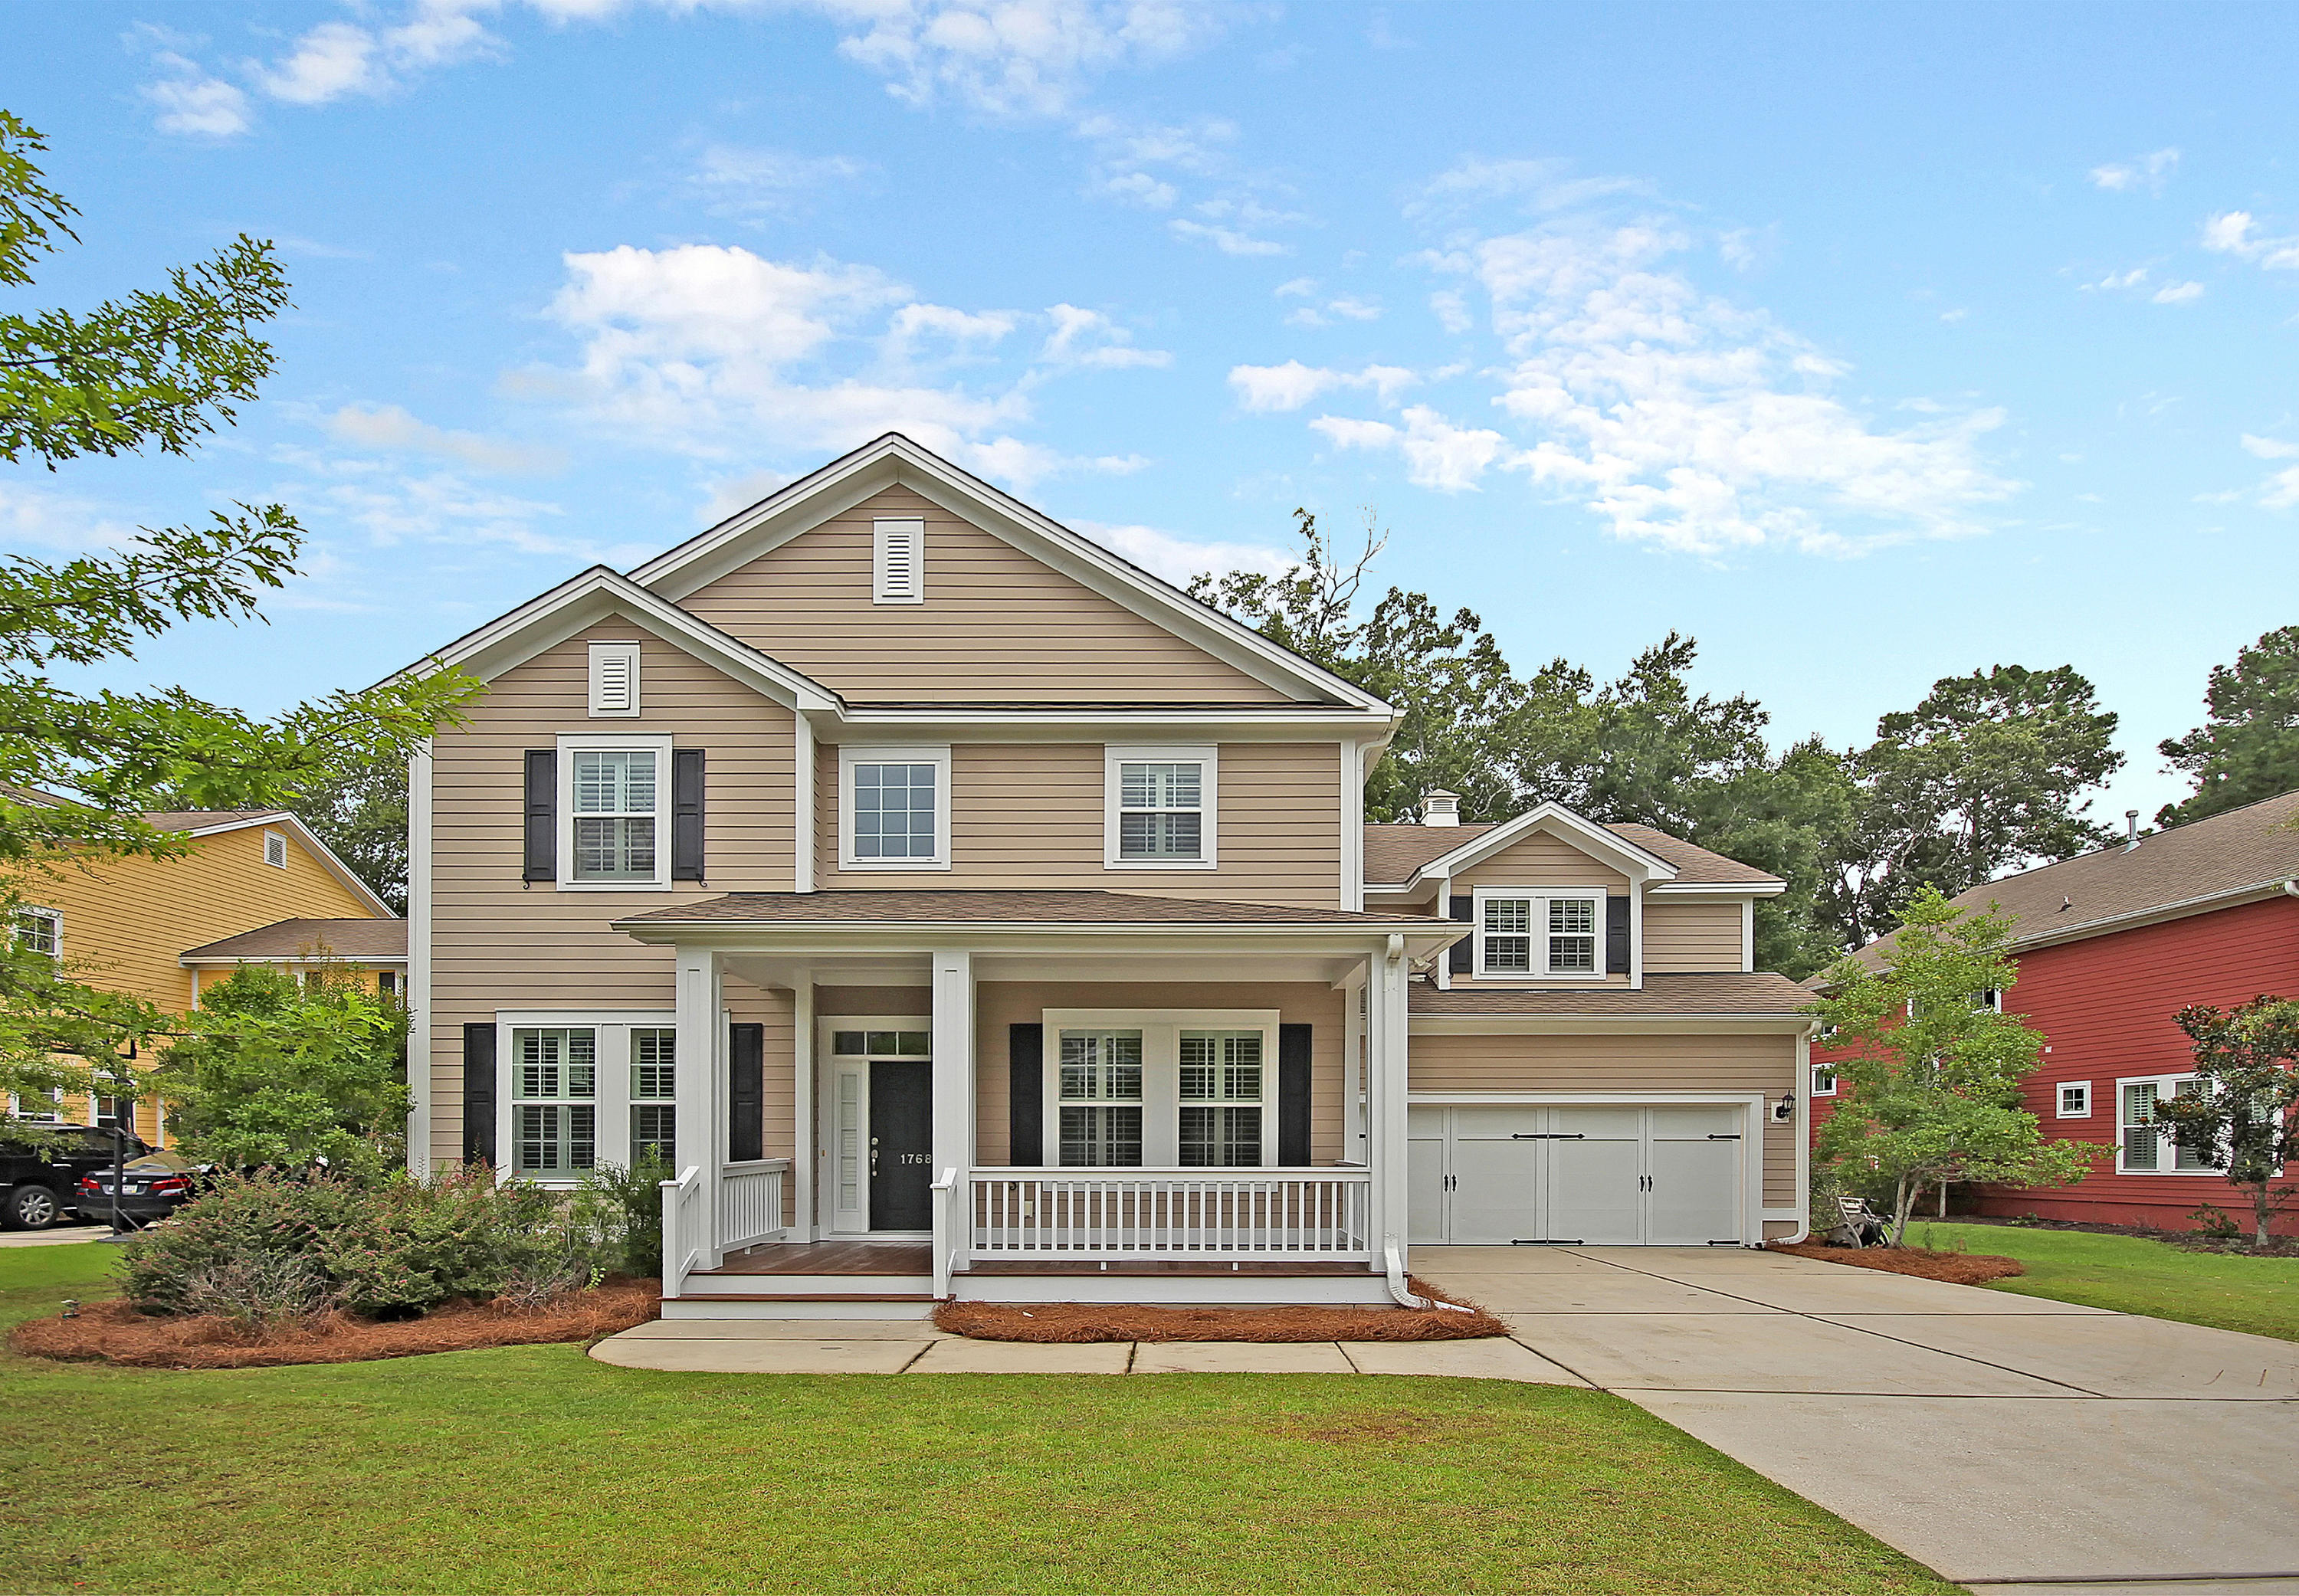 Park West Homes For Sale - 1768 Wellstead, Mount Pleasant, SC - 1